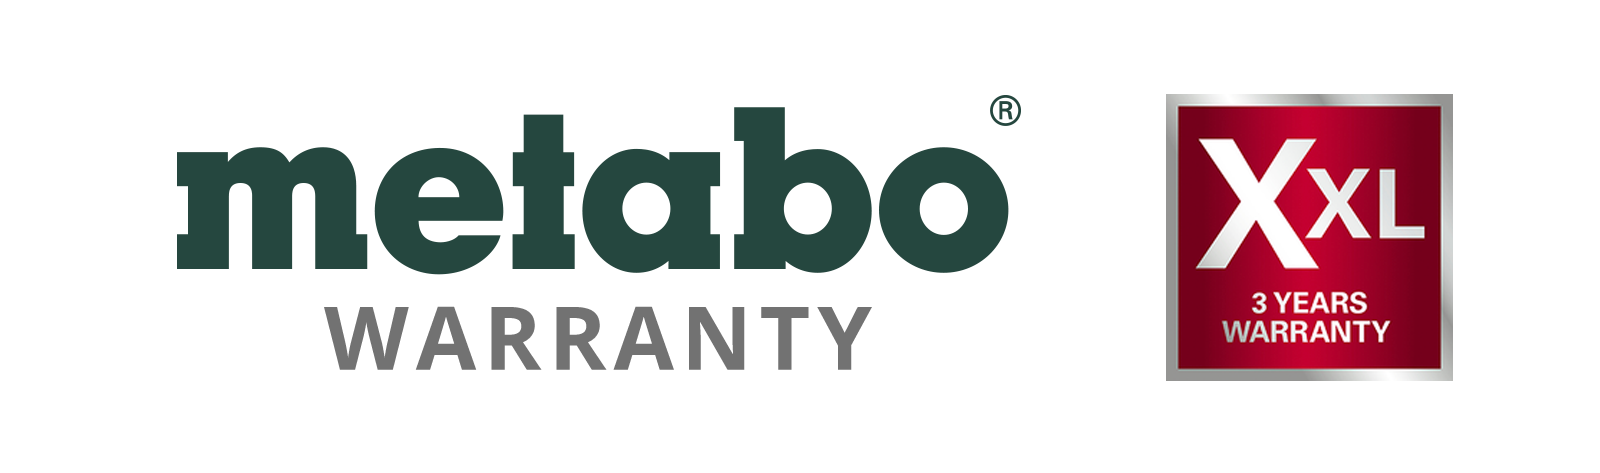 metabo-warranty.png